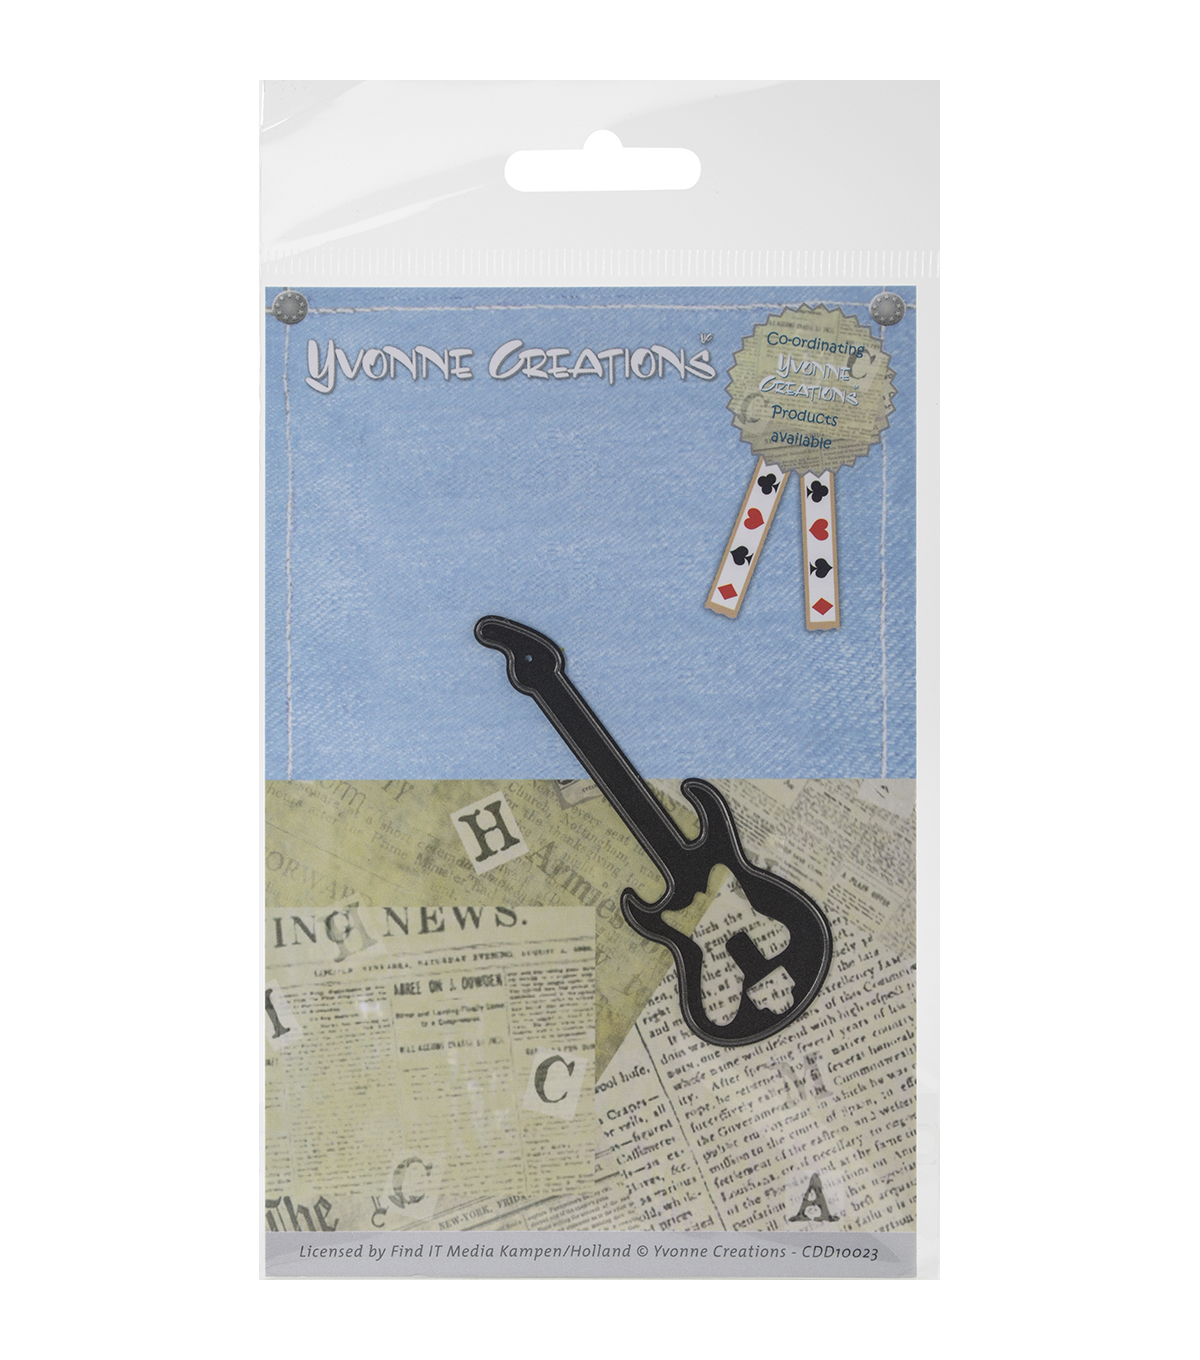 Yvonne Creations Men\u0027s Die-Guitar